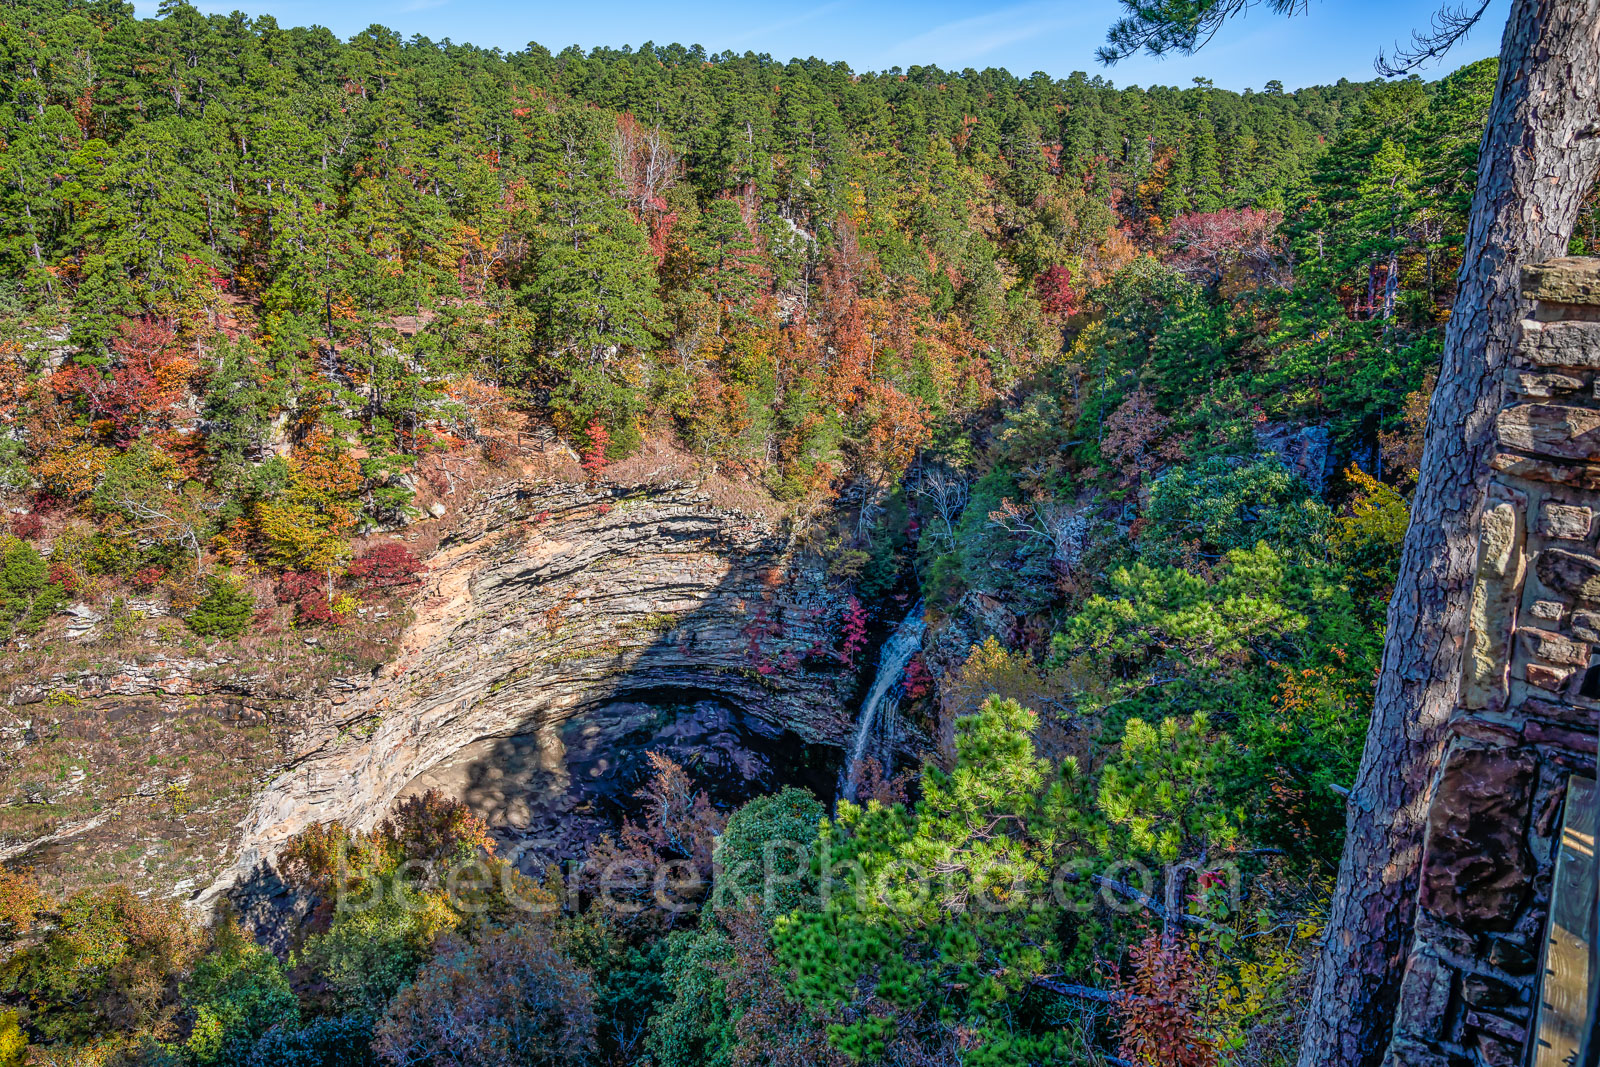 Keywords:cedar fall, waterfall, bluff, cliff, colorful trees, autumn, fall colors, river, pines, southern yellow pine, maples, sweet gum, black hickory, waters, Lake Bailey, stream, wilderness, scenic, photo